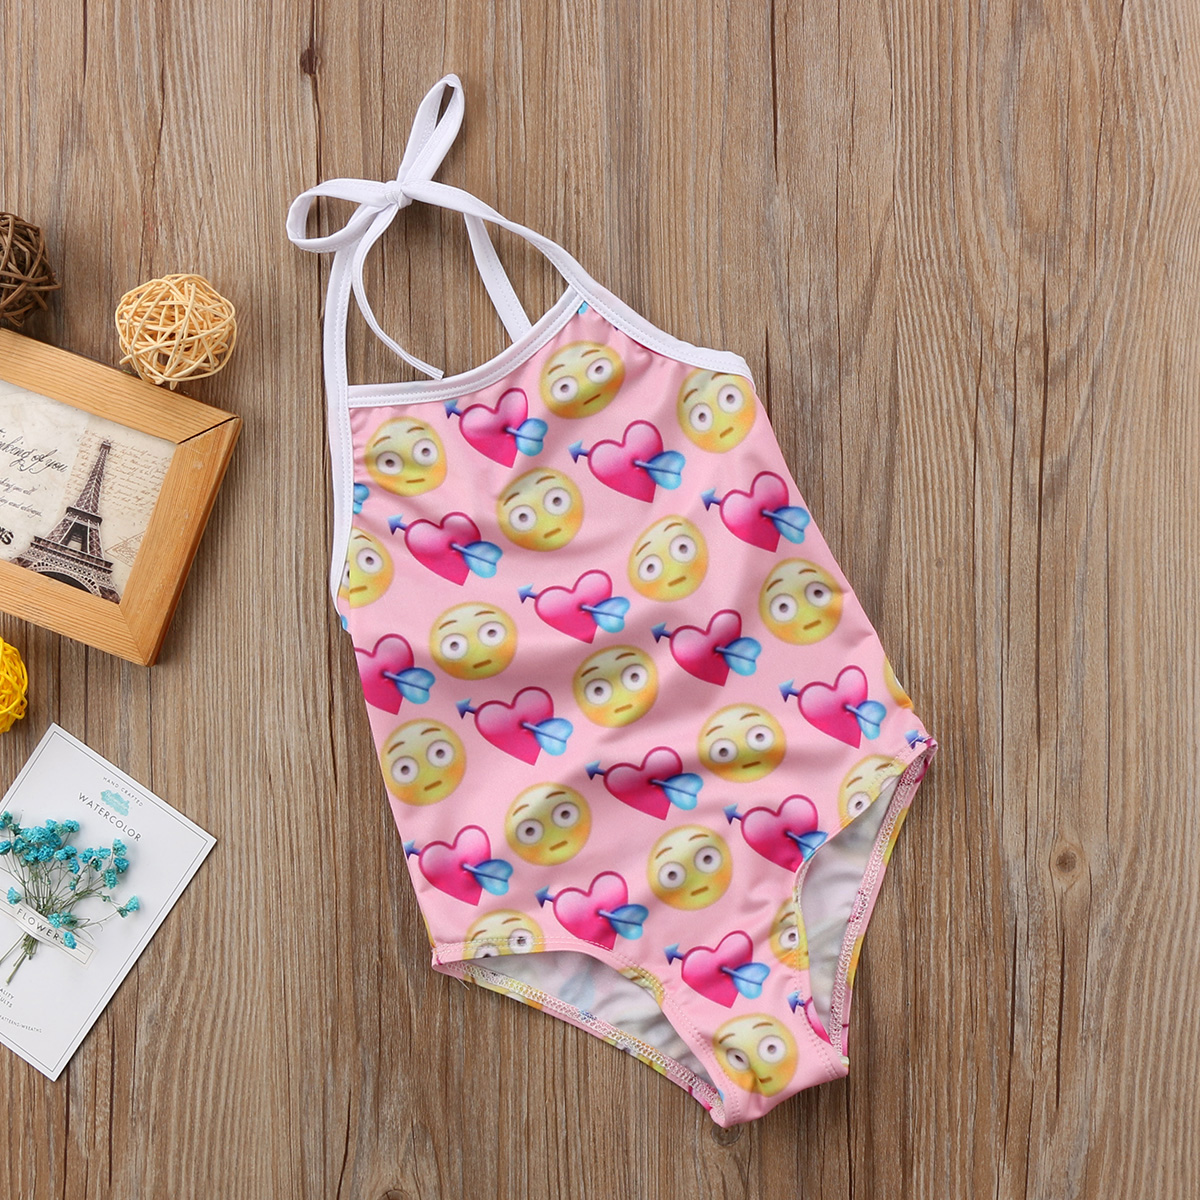 2018 Fashion Baby Romper Toddler Kids Baby Girl Emoji Romper Straps Swimsuit Beachwear Bikini Bath Outfit